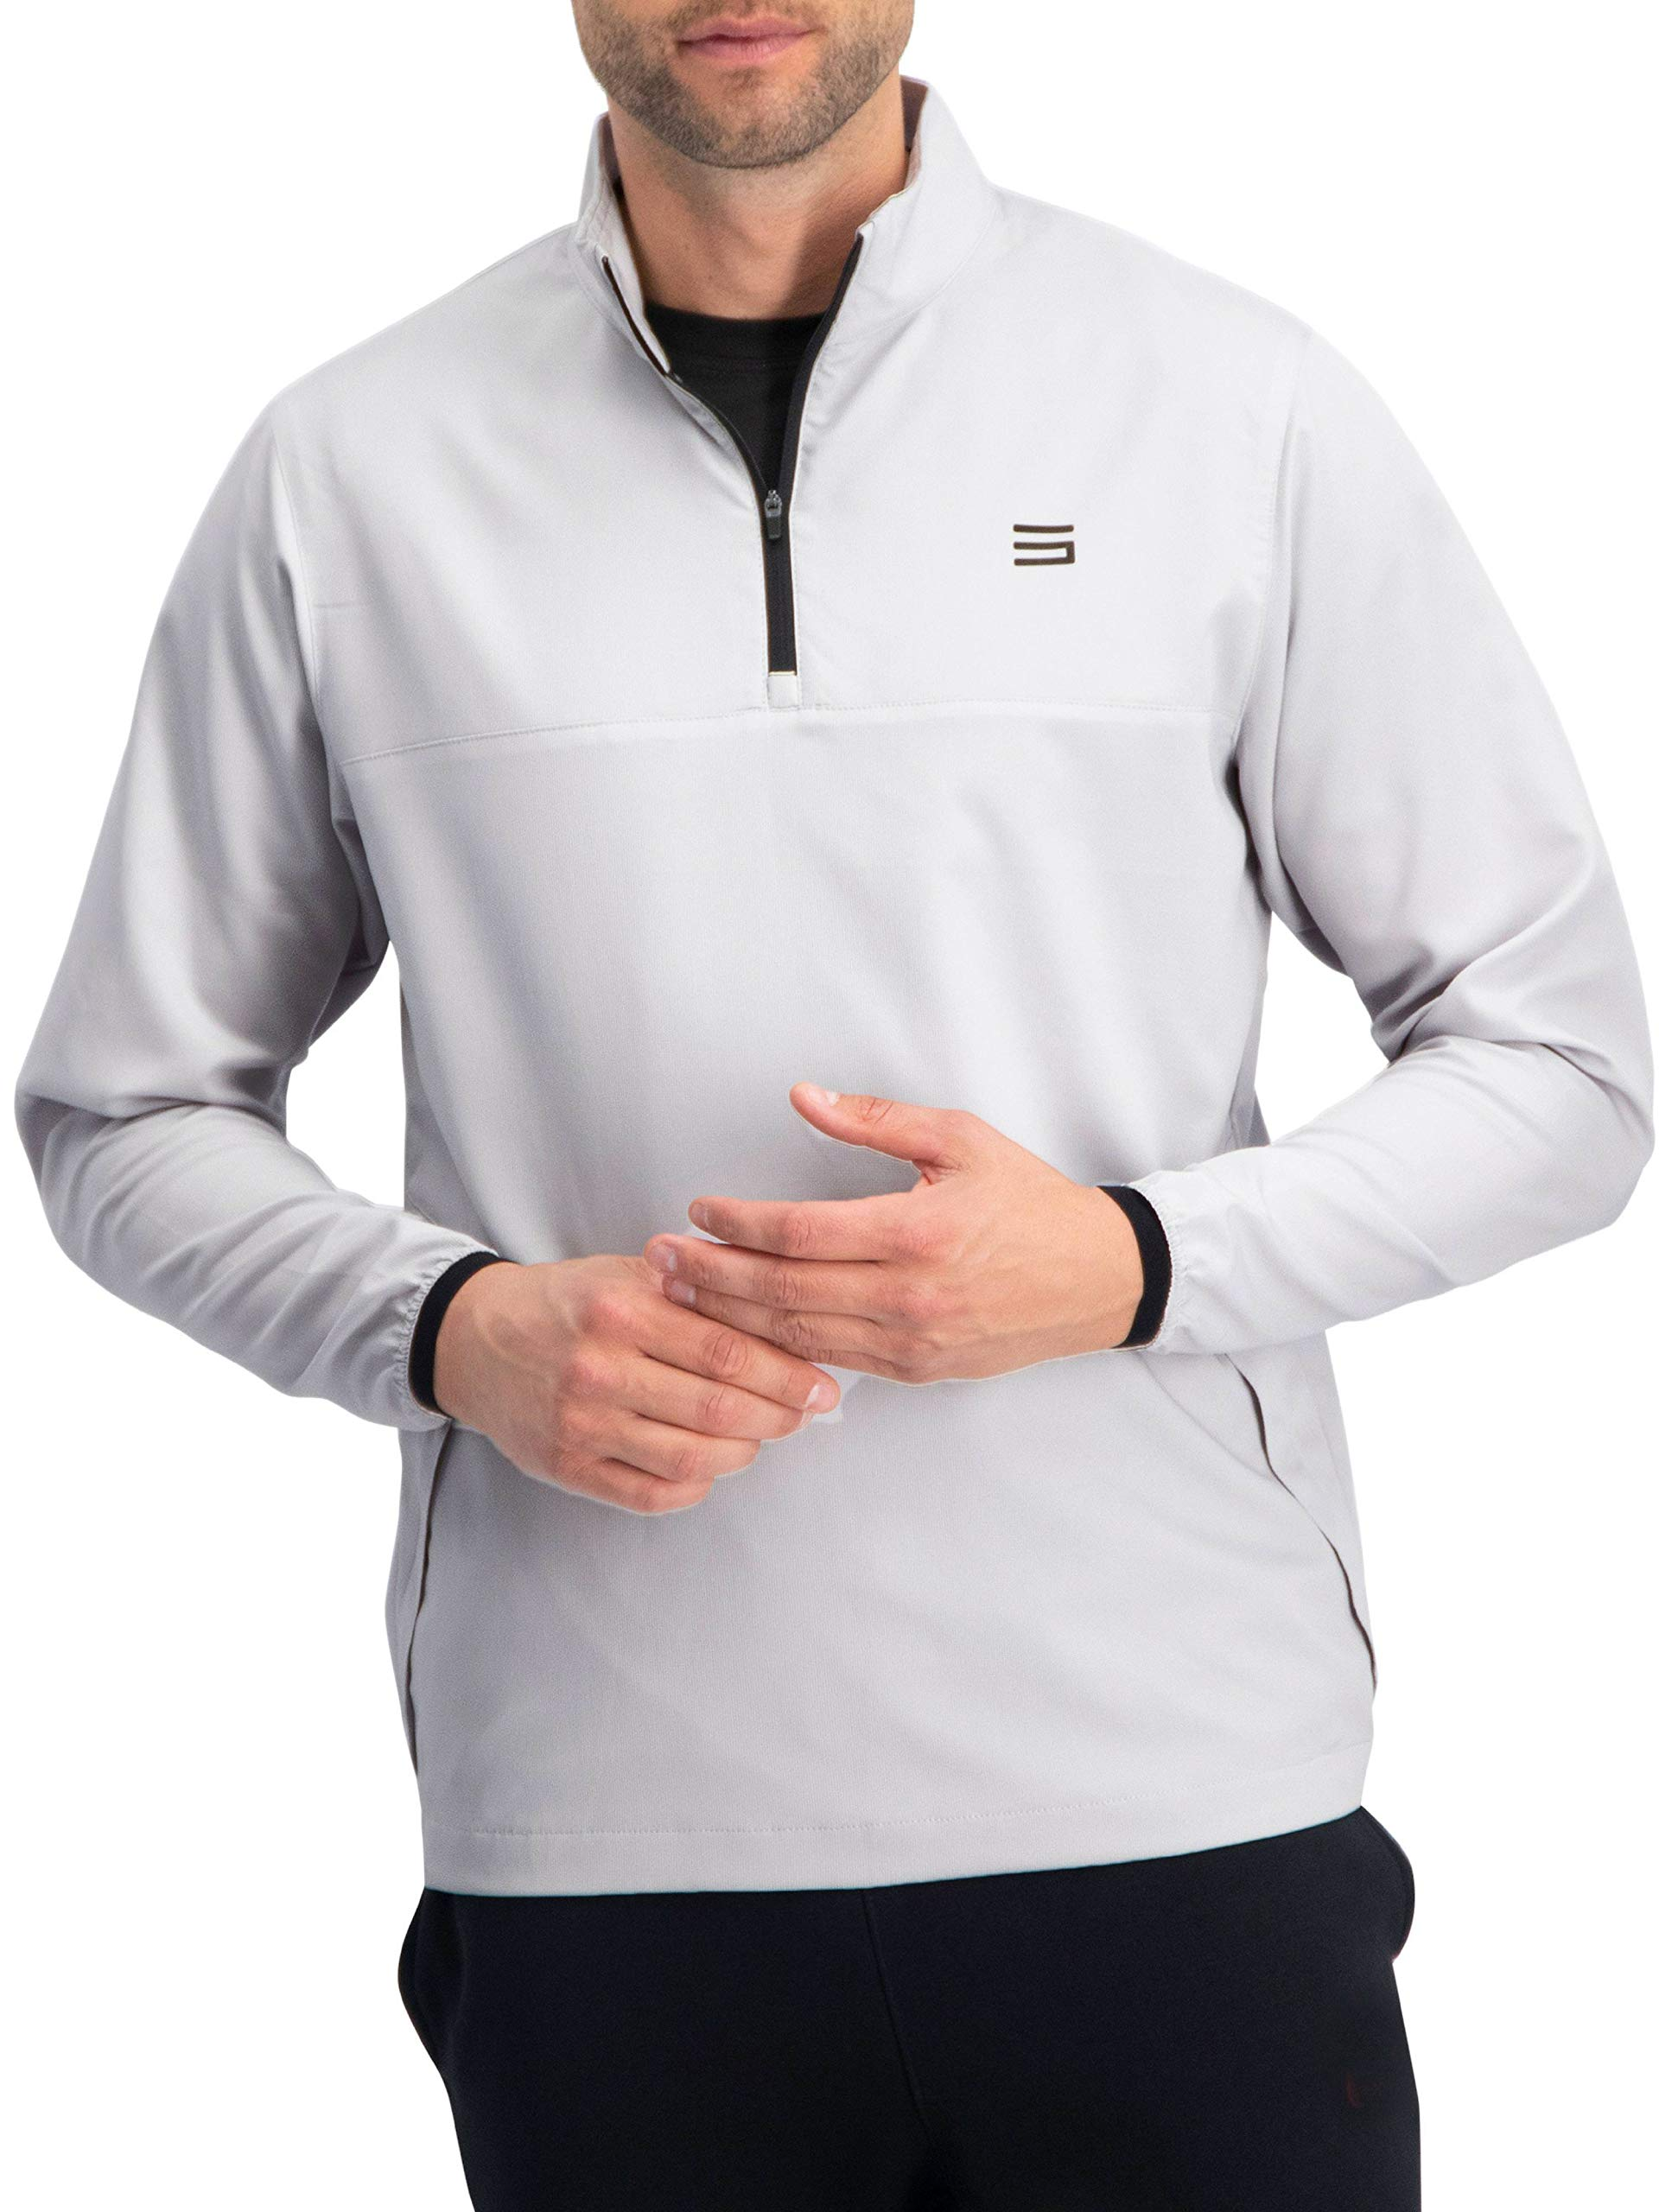 Mens Windbreaker Jackets - Half Zip Golf Pullover Wind Jacket - Vented, Dry Fit by Three Sixty Six